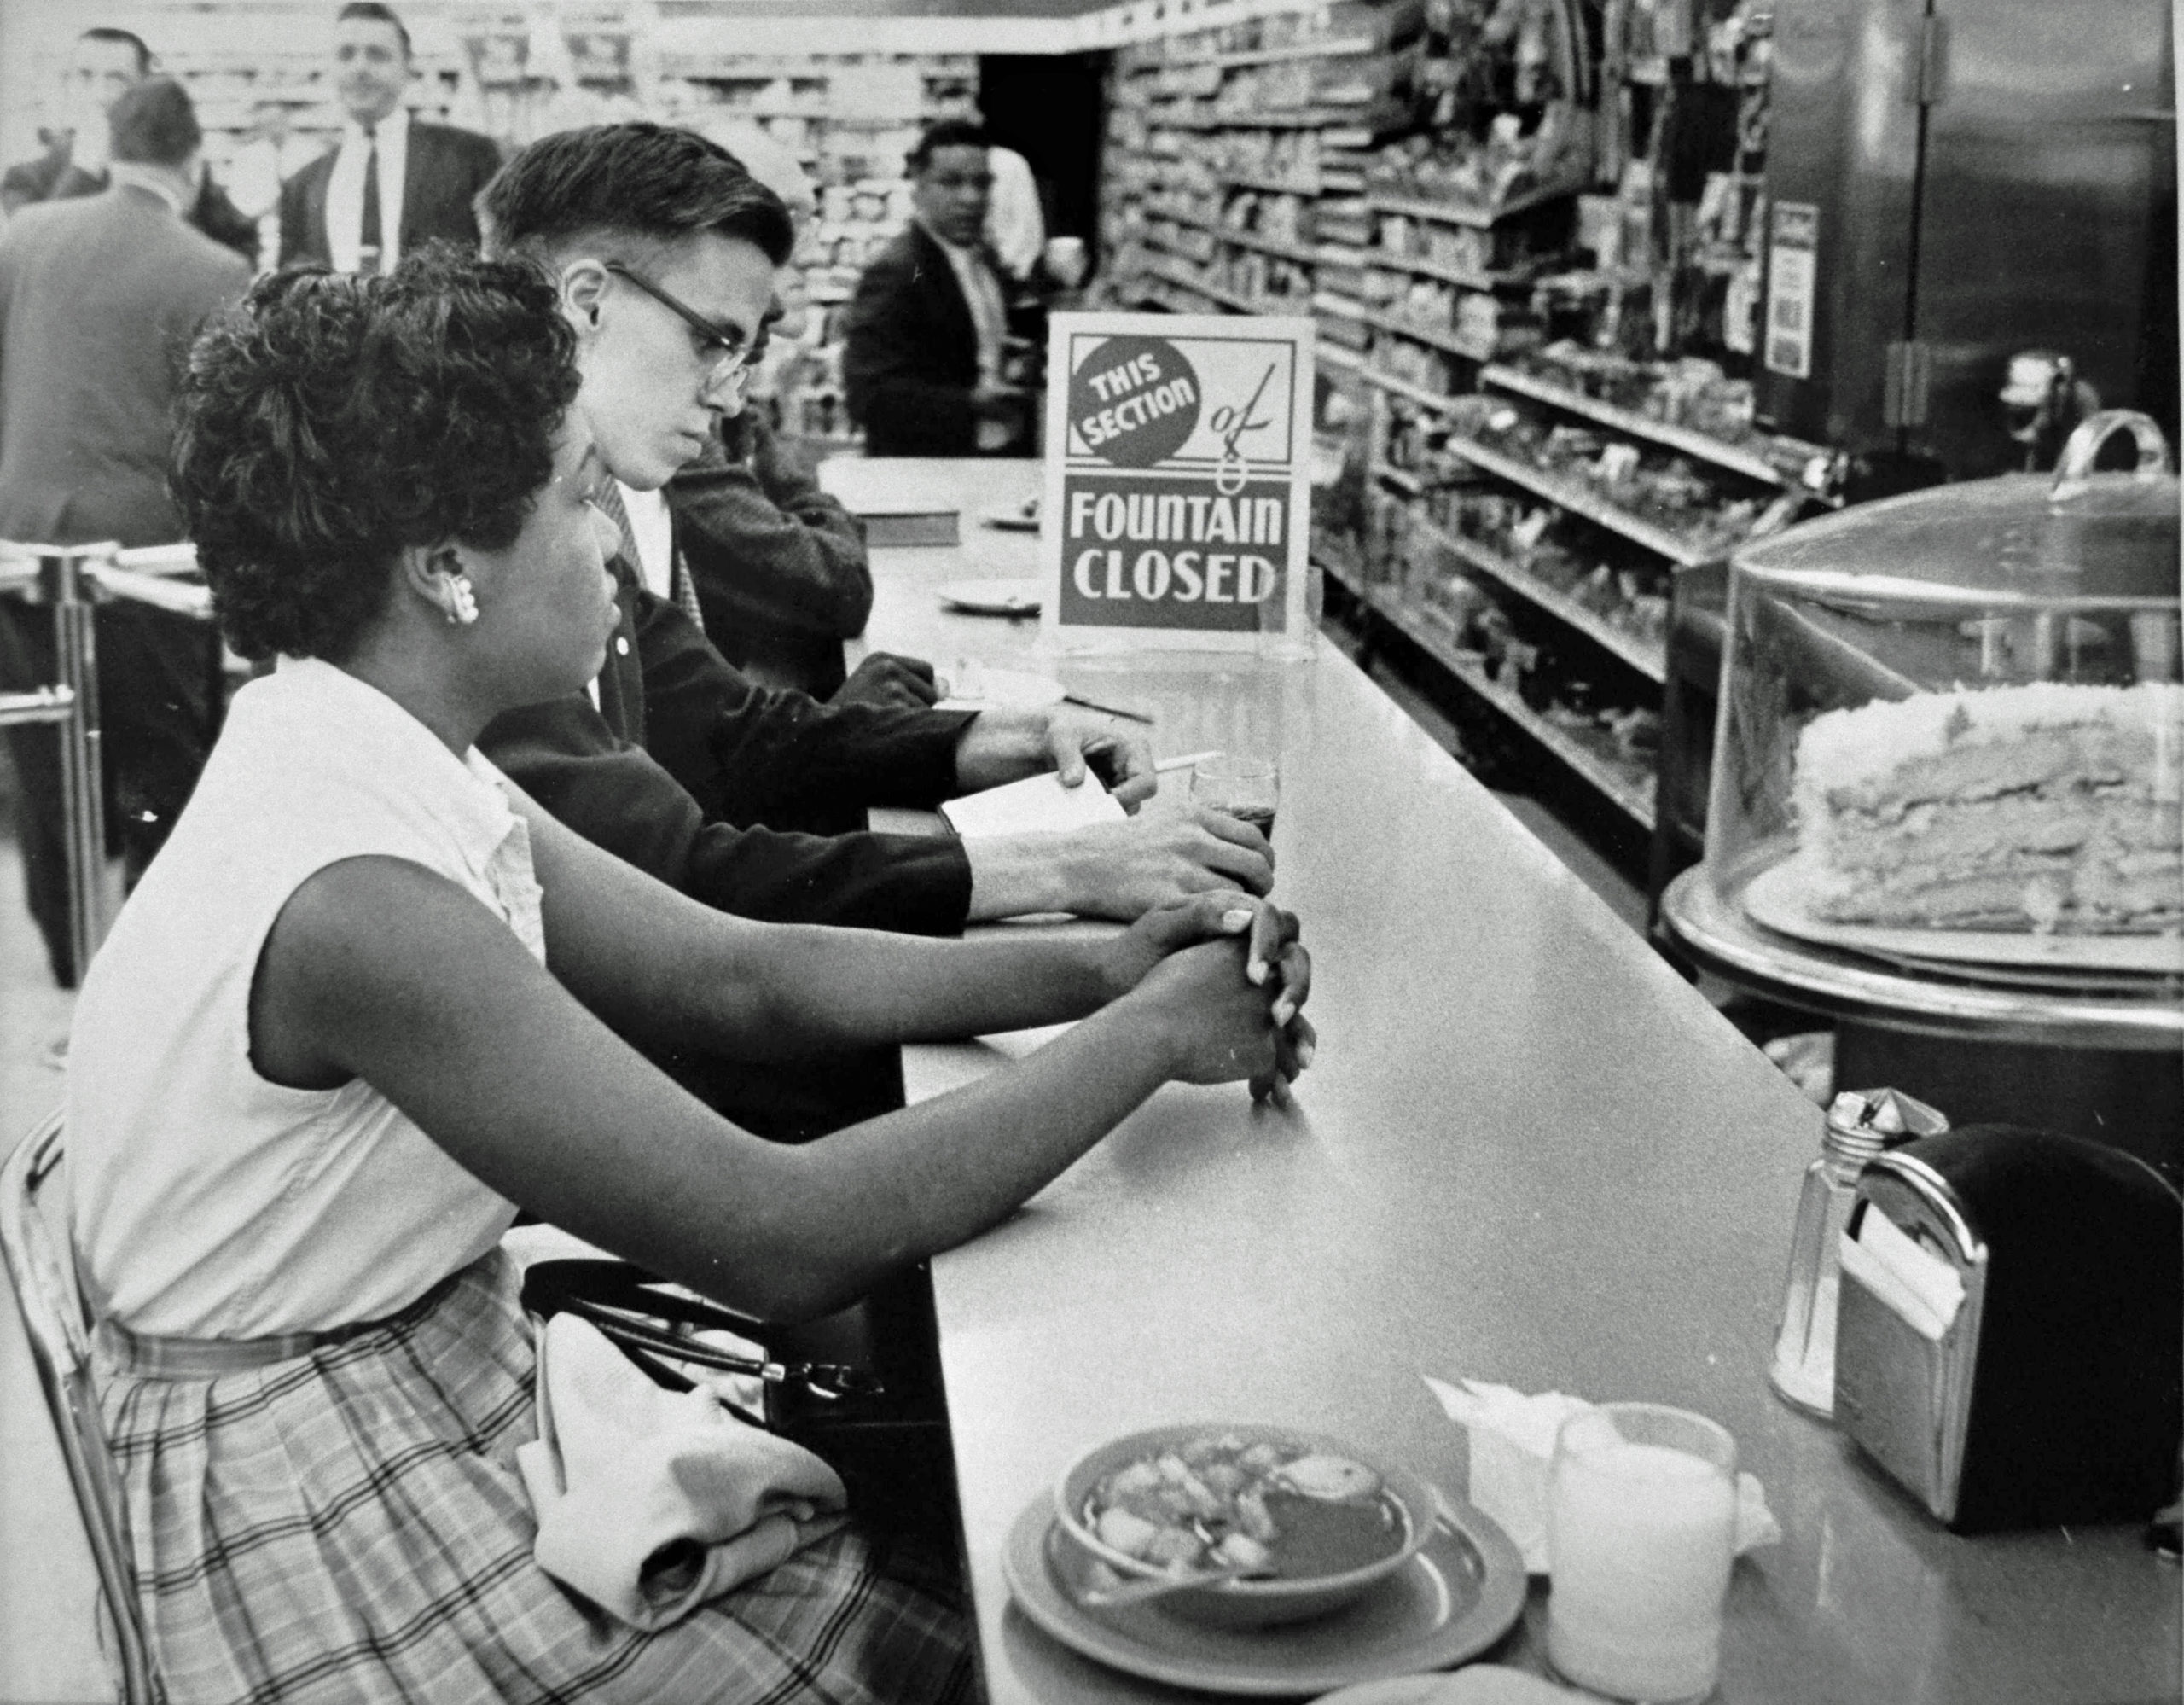 Gwendolyn Greene and David Hartsough sit at the People's Drug Store counter.